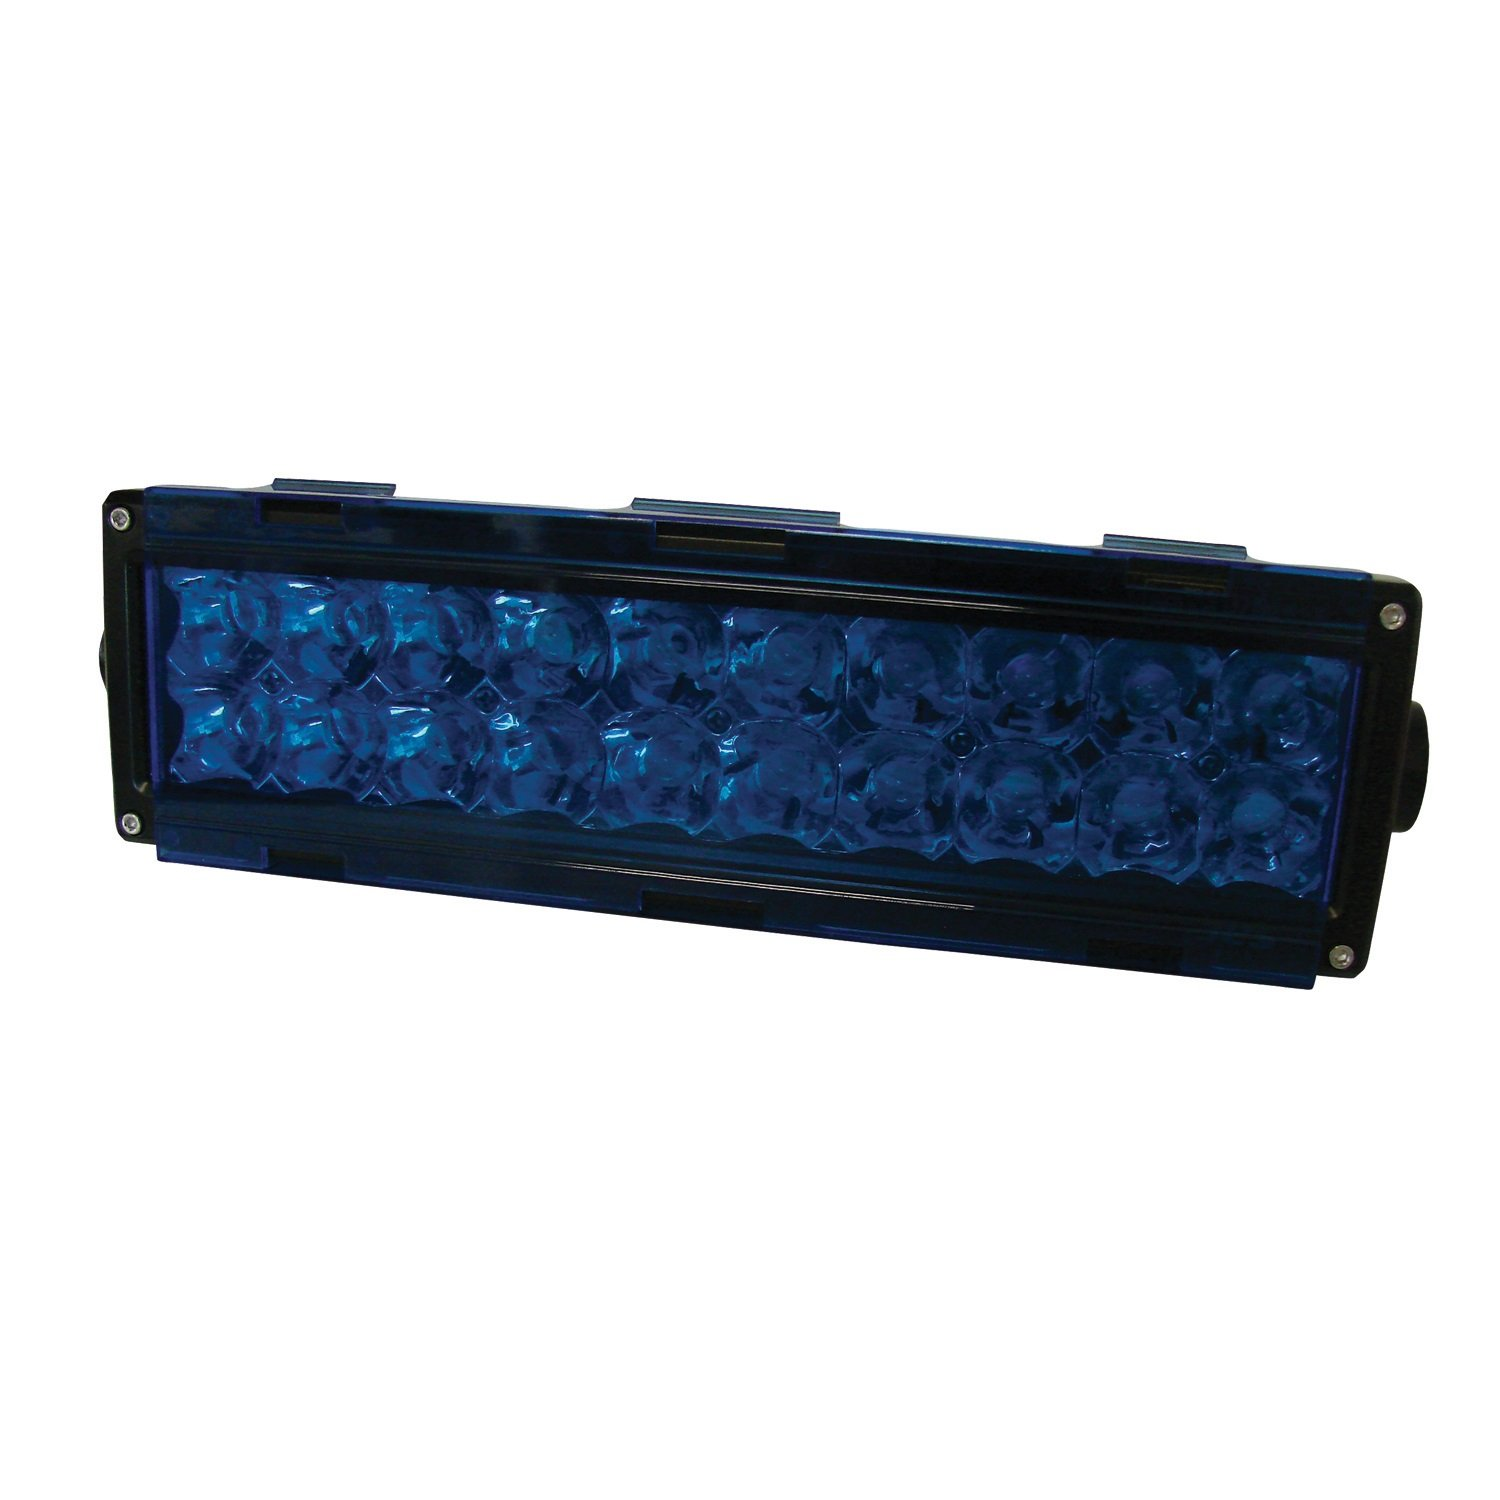 Competition Specialities CSI W4926 Double Row Light Cover Blue 10